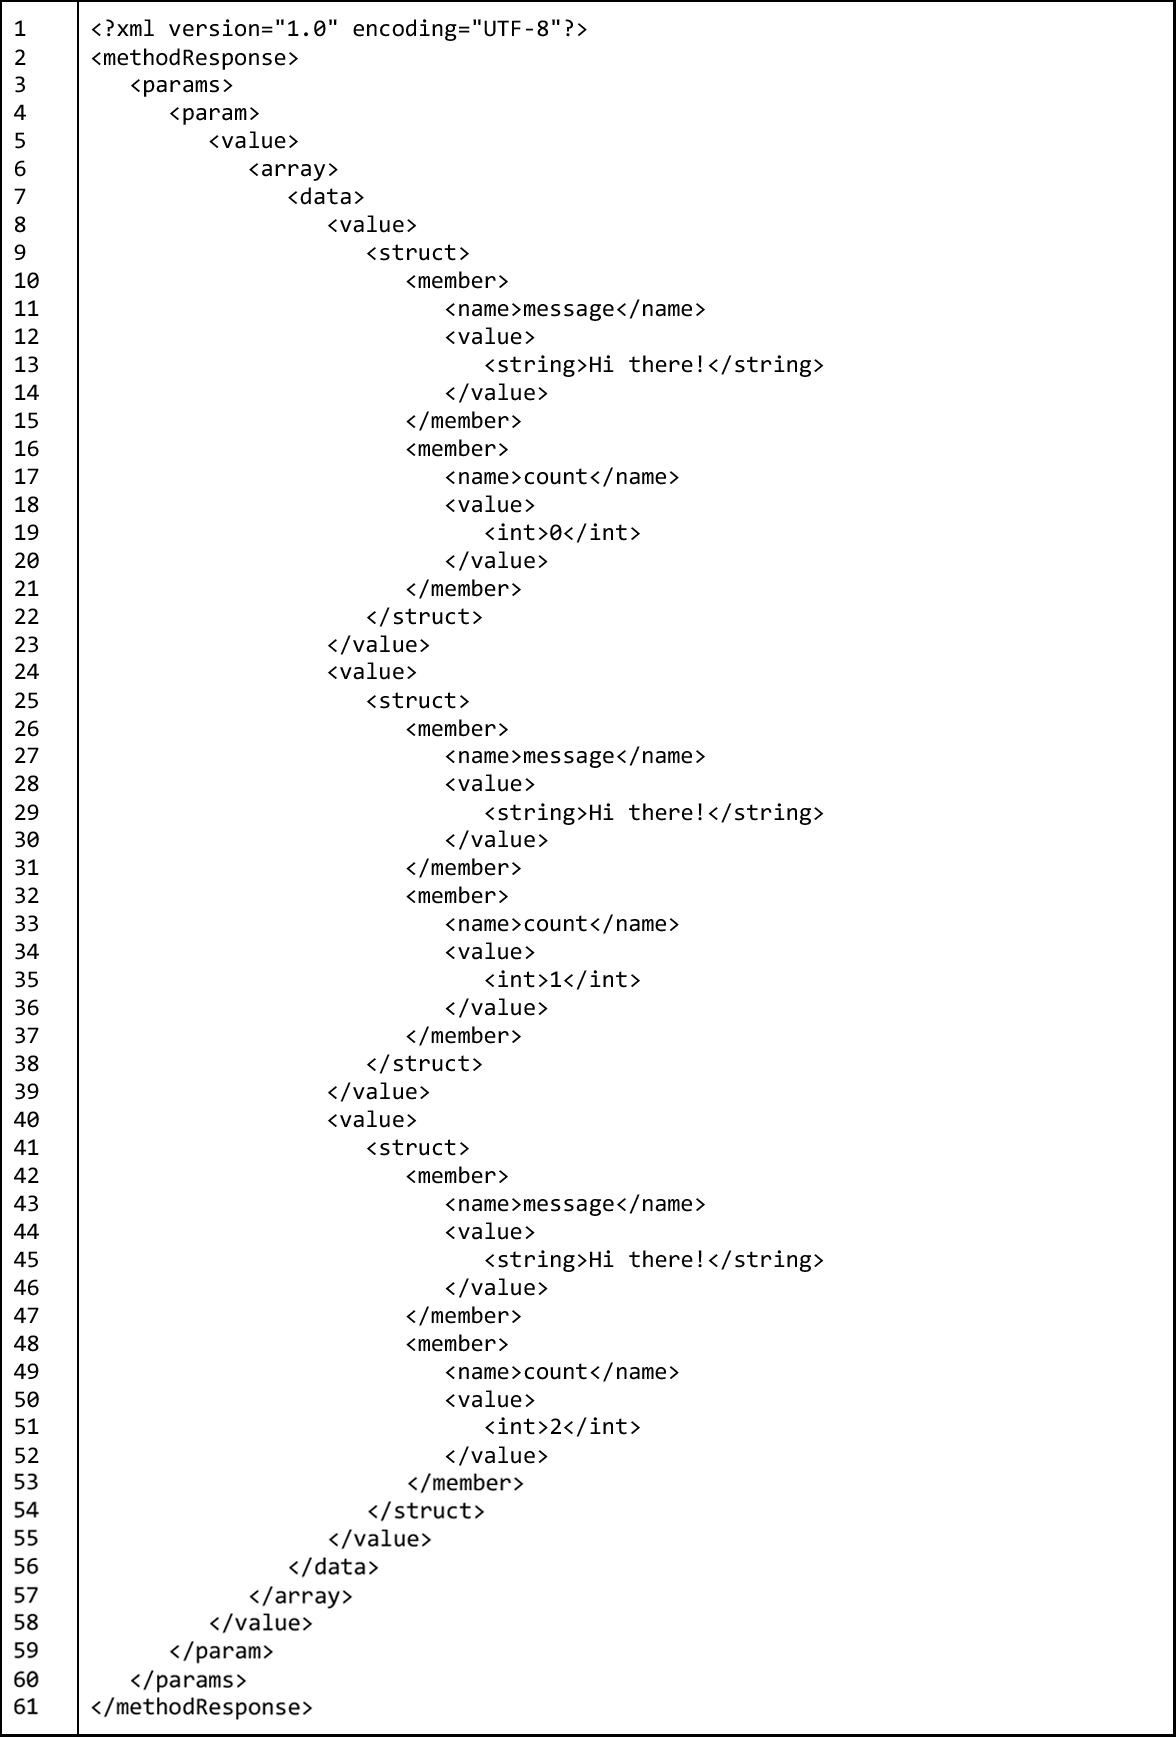 Listing 9: XML-RPC API procedure, chatter responds with an array of values, each of which contains a struct